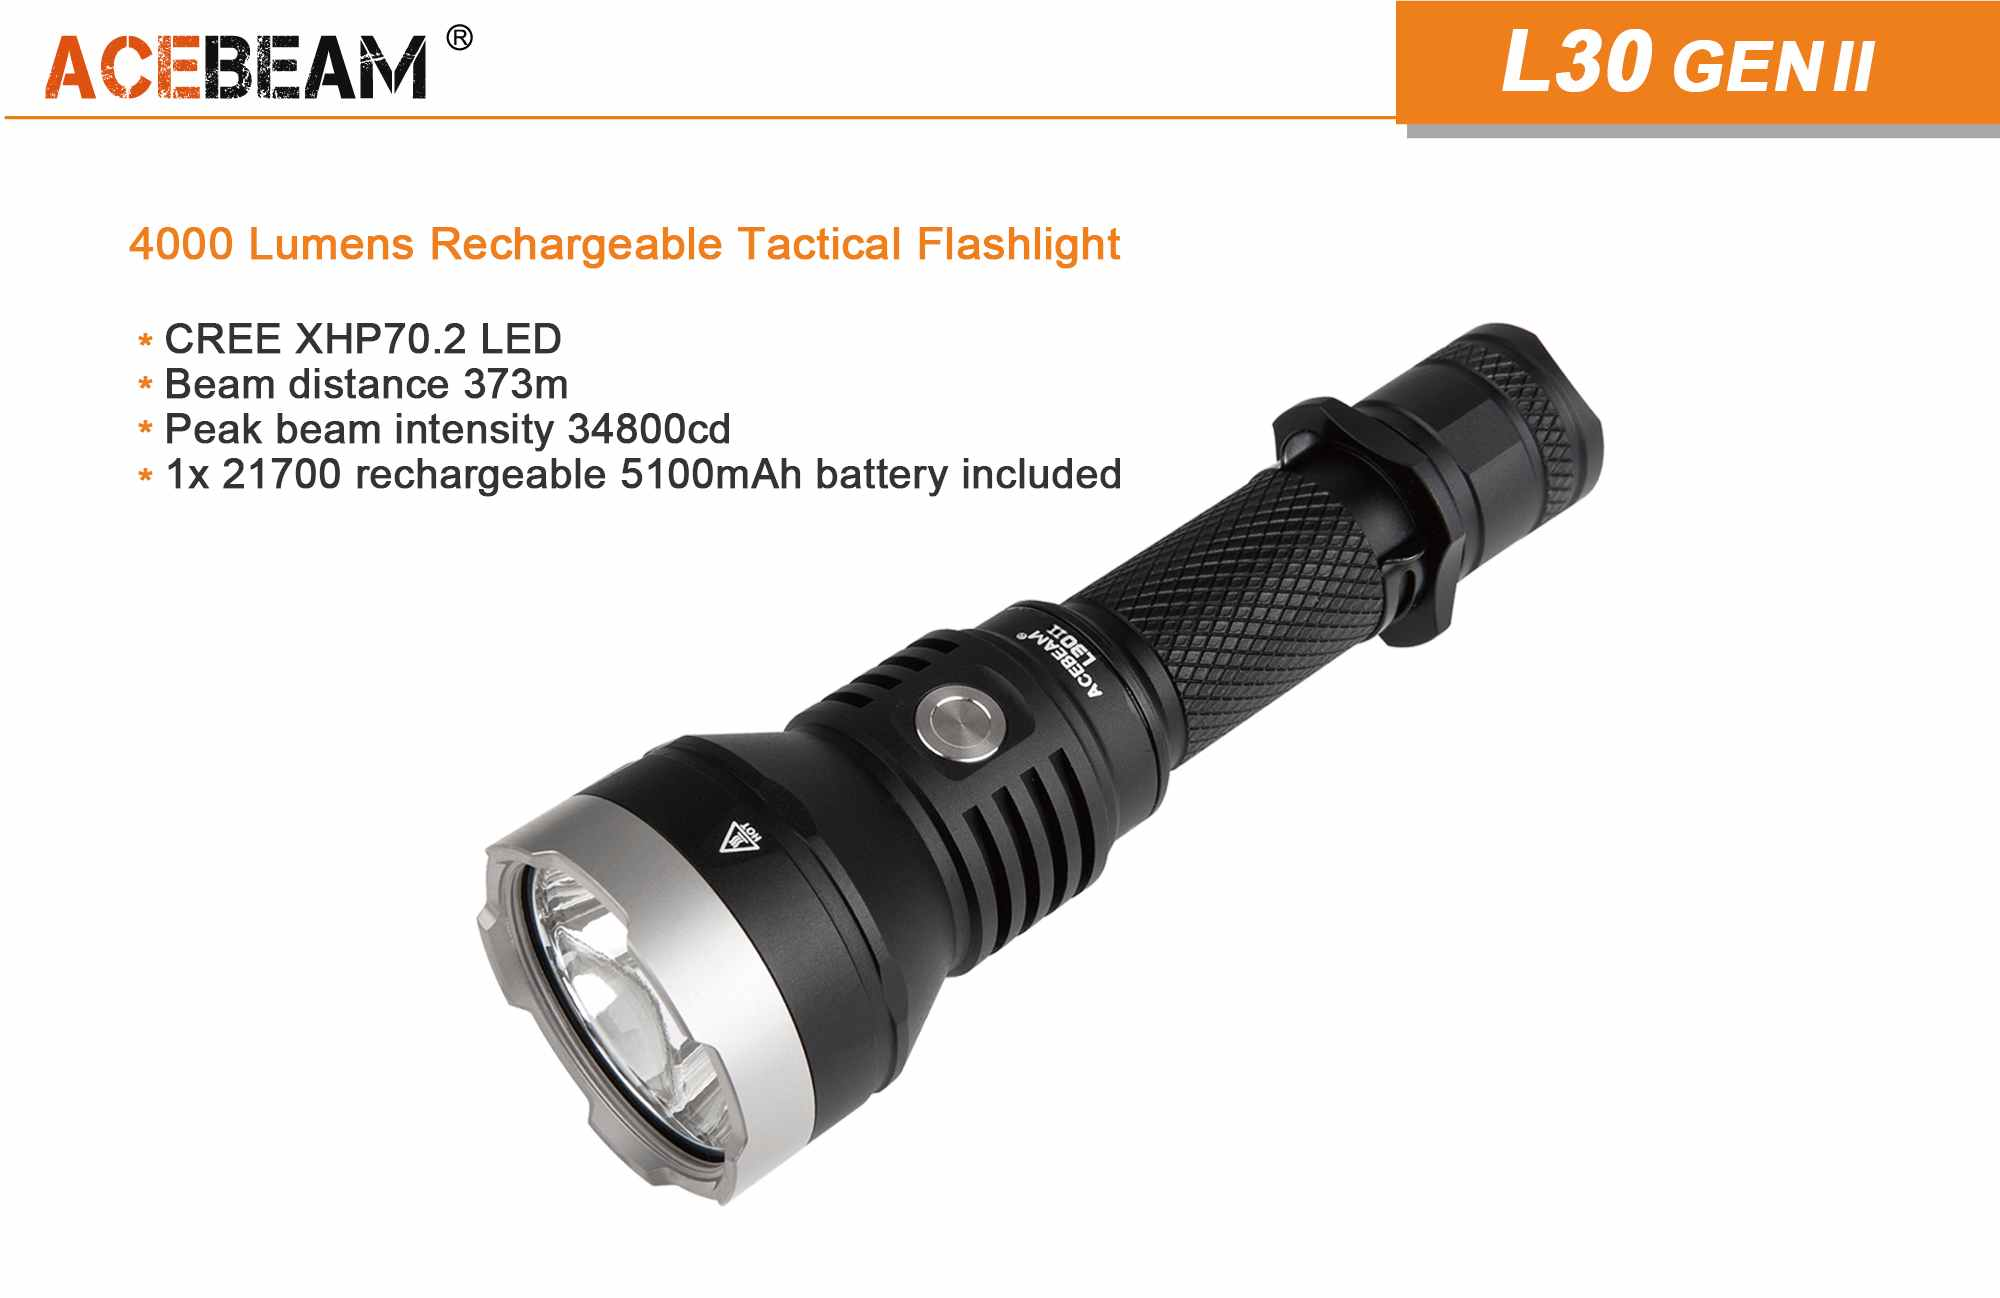 Acebeam L30 powerful tactical flashlight